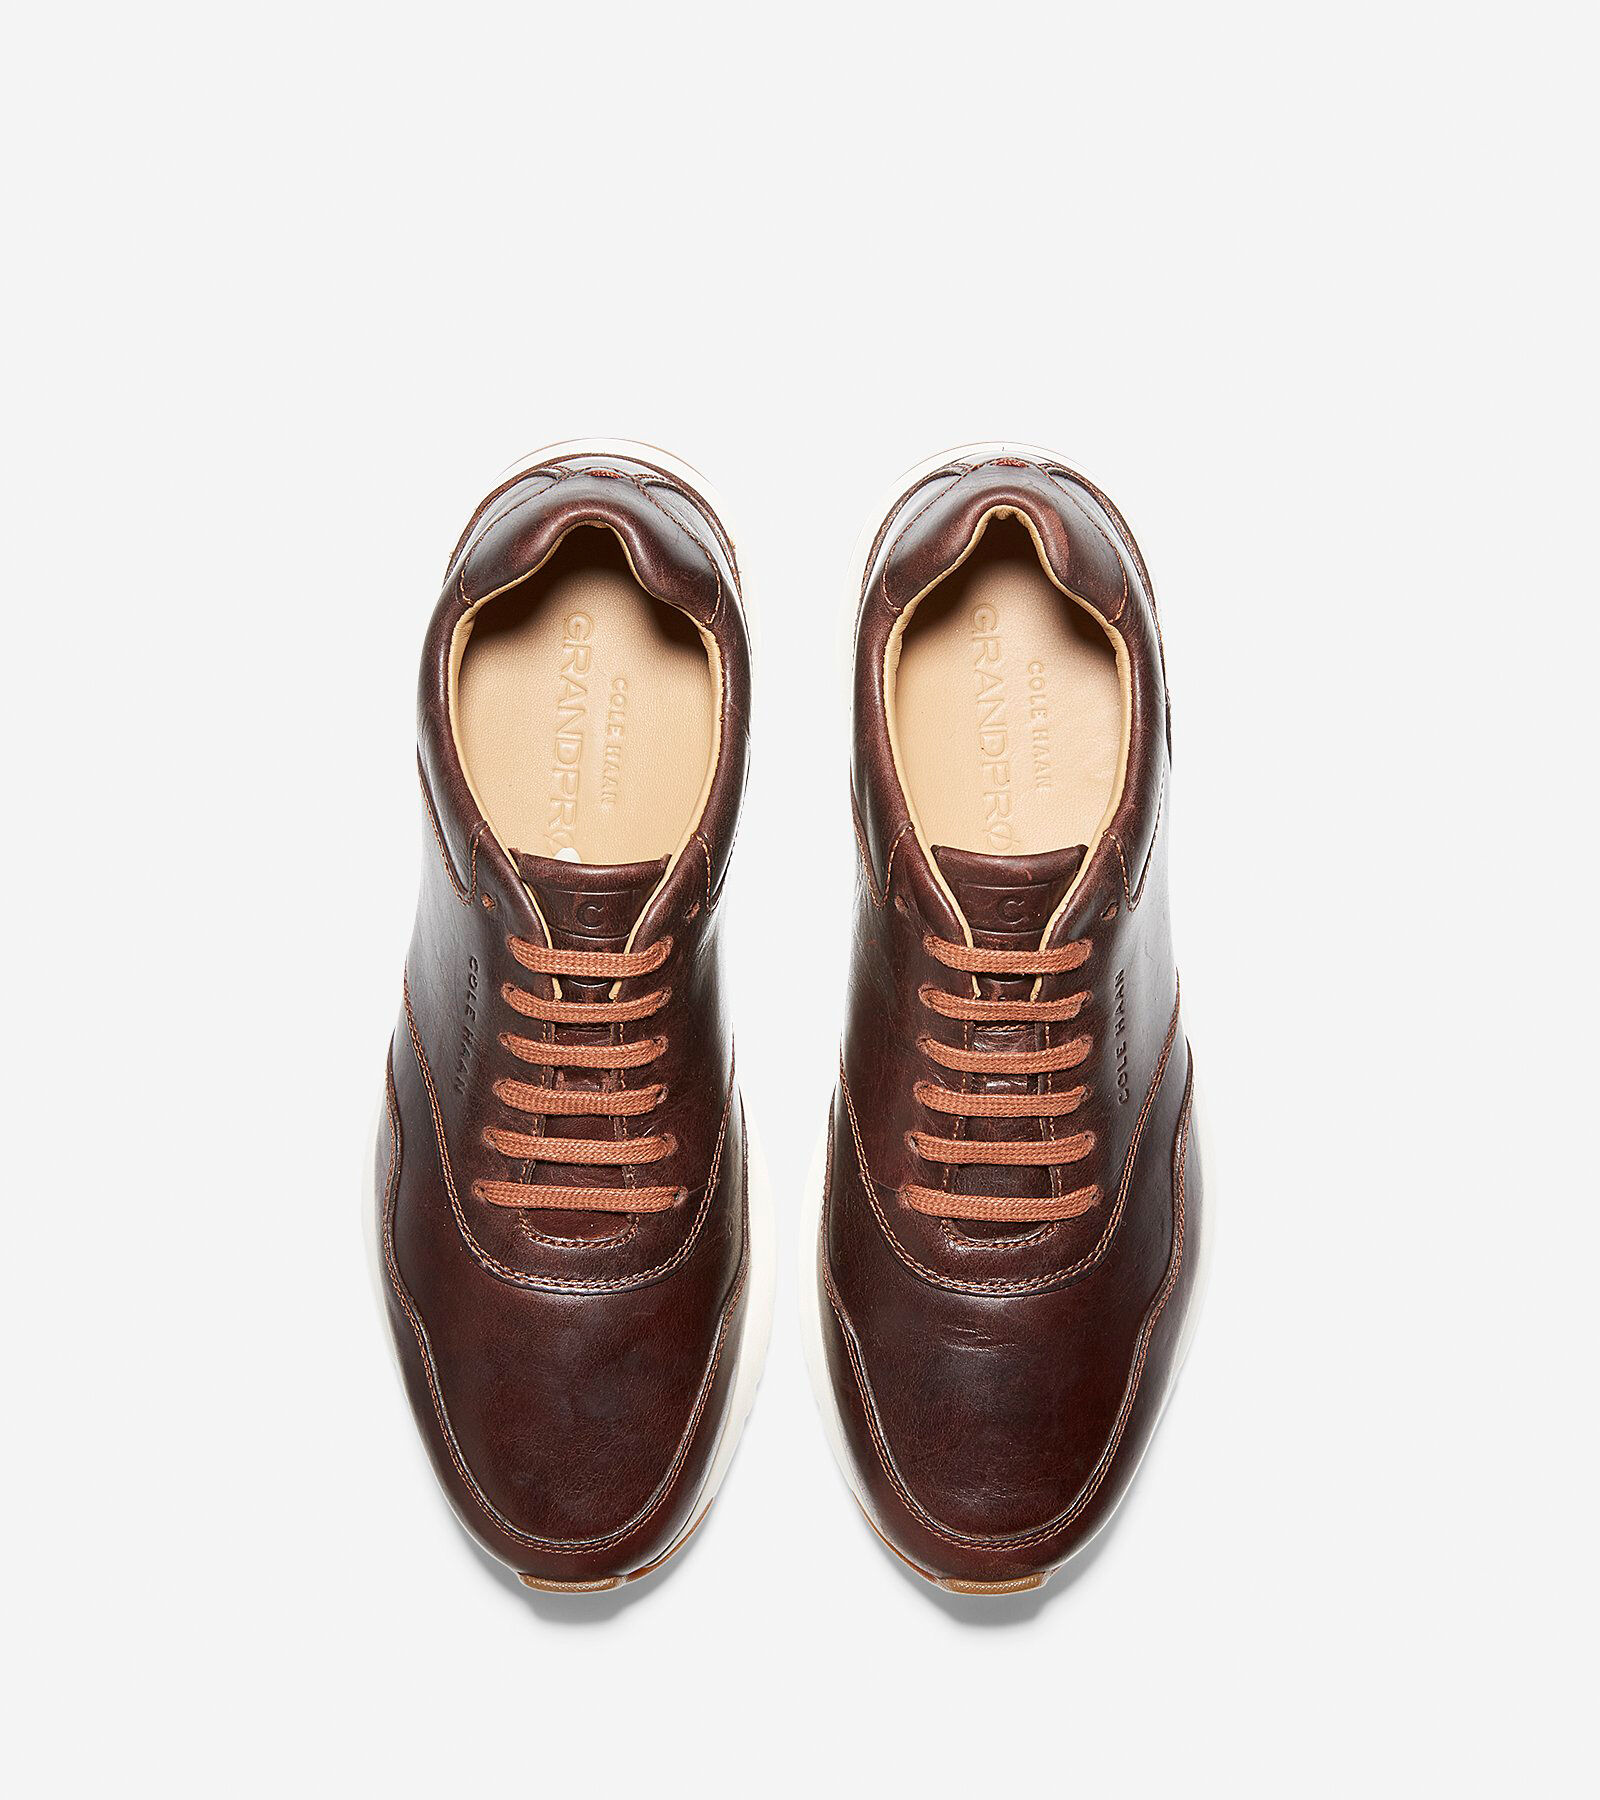 Cole Haan GrandPro Runner Leather Sneaker hYVShzG